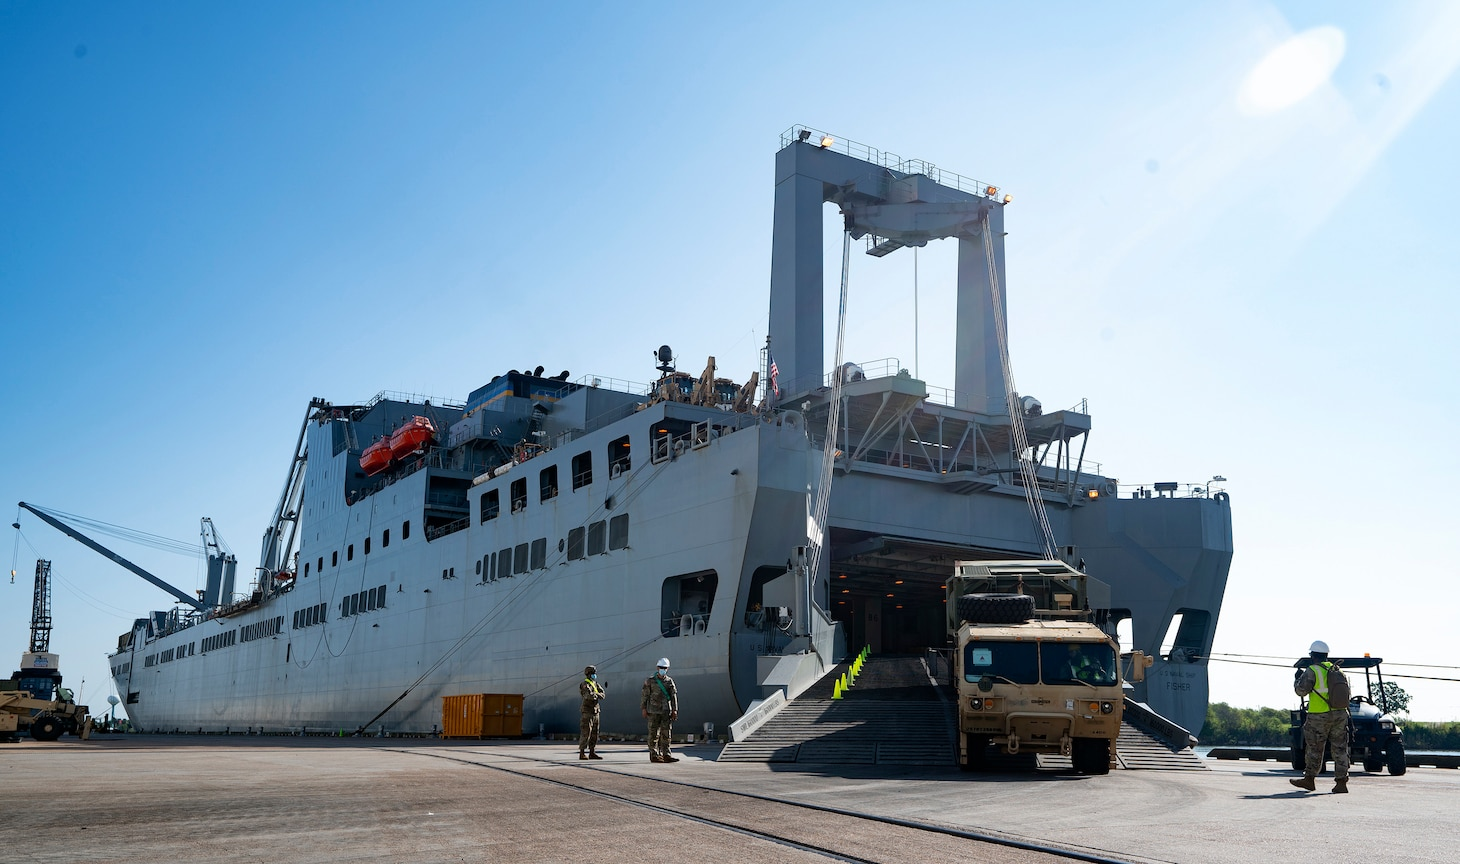 A Modular Fuel System vehicle leaves the Large, Medium- Speed, Roll-on/Roll-off Fisher ship after soldiers offloaded cargo during the Joint Readiness Exercise 20, at the Port of Port Arthur, Texas, Sept. 26, 2020.